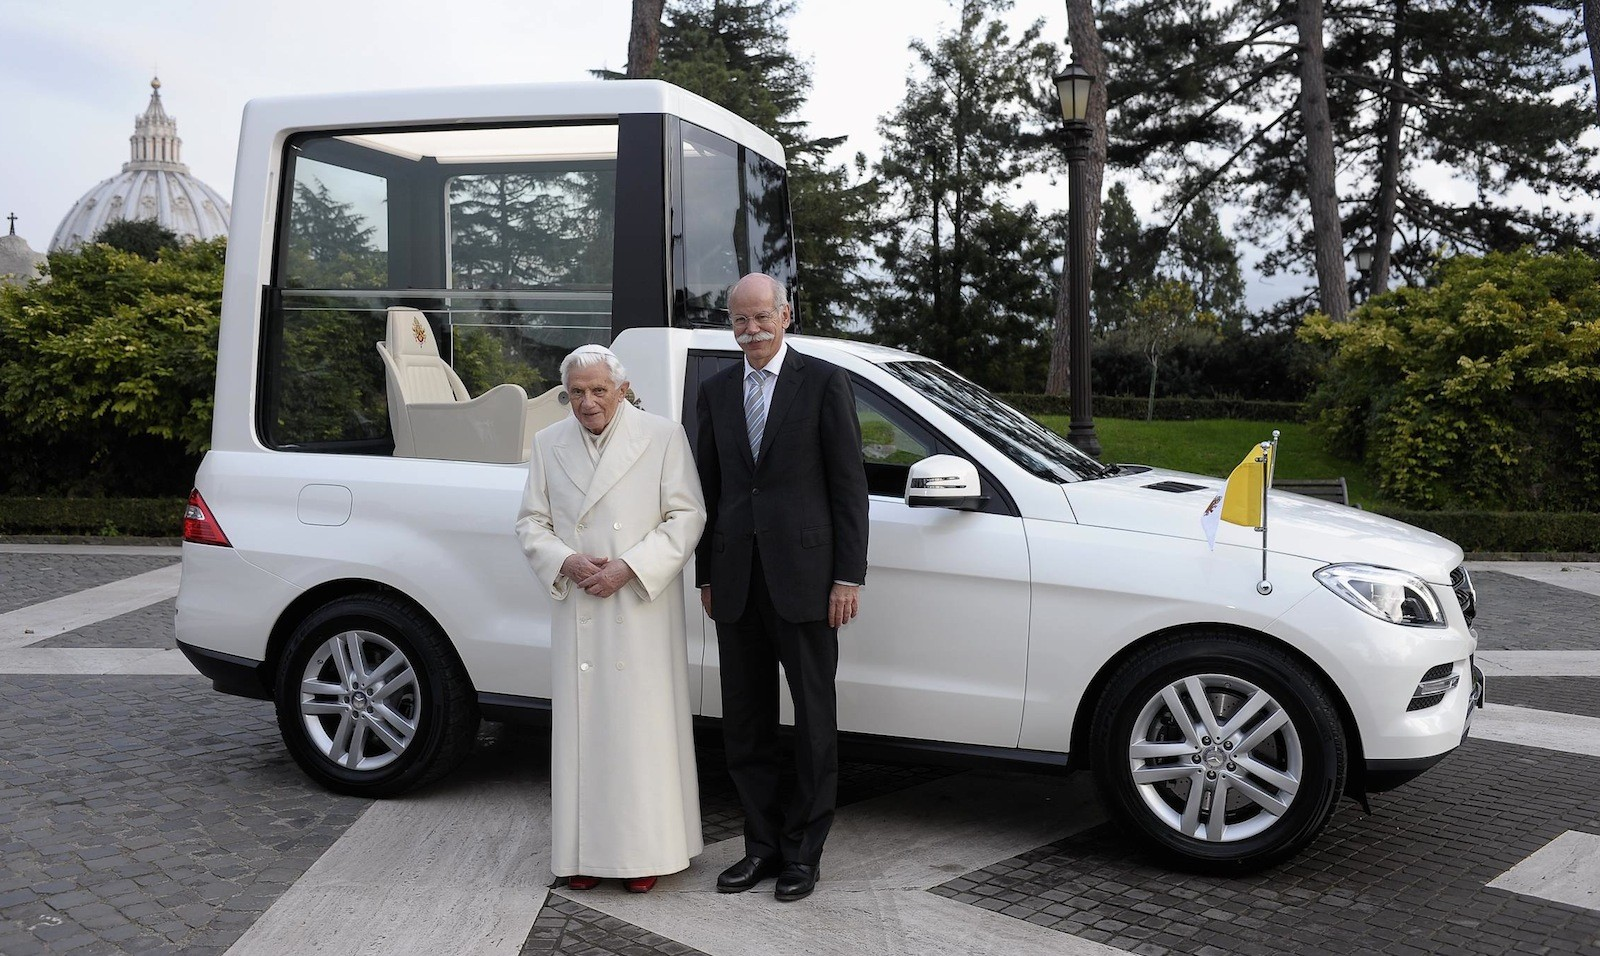 Drawn vehicle modified car The a Popemobile horse History